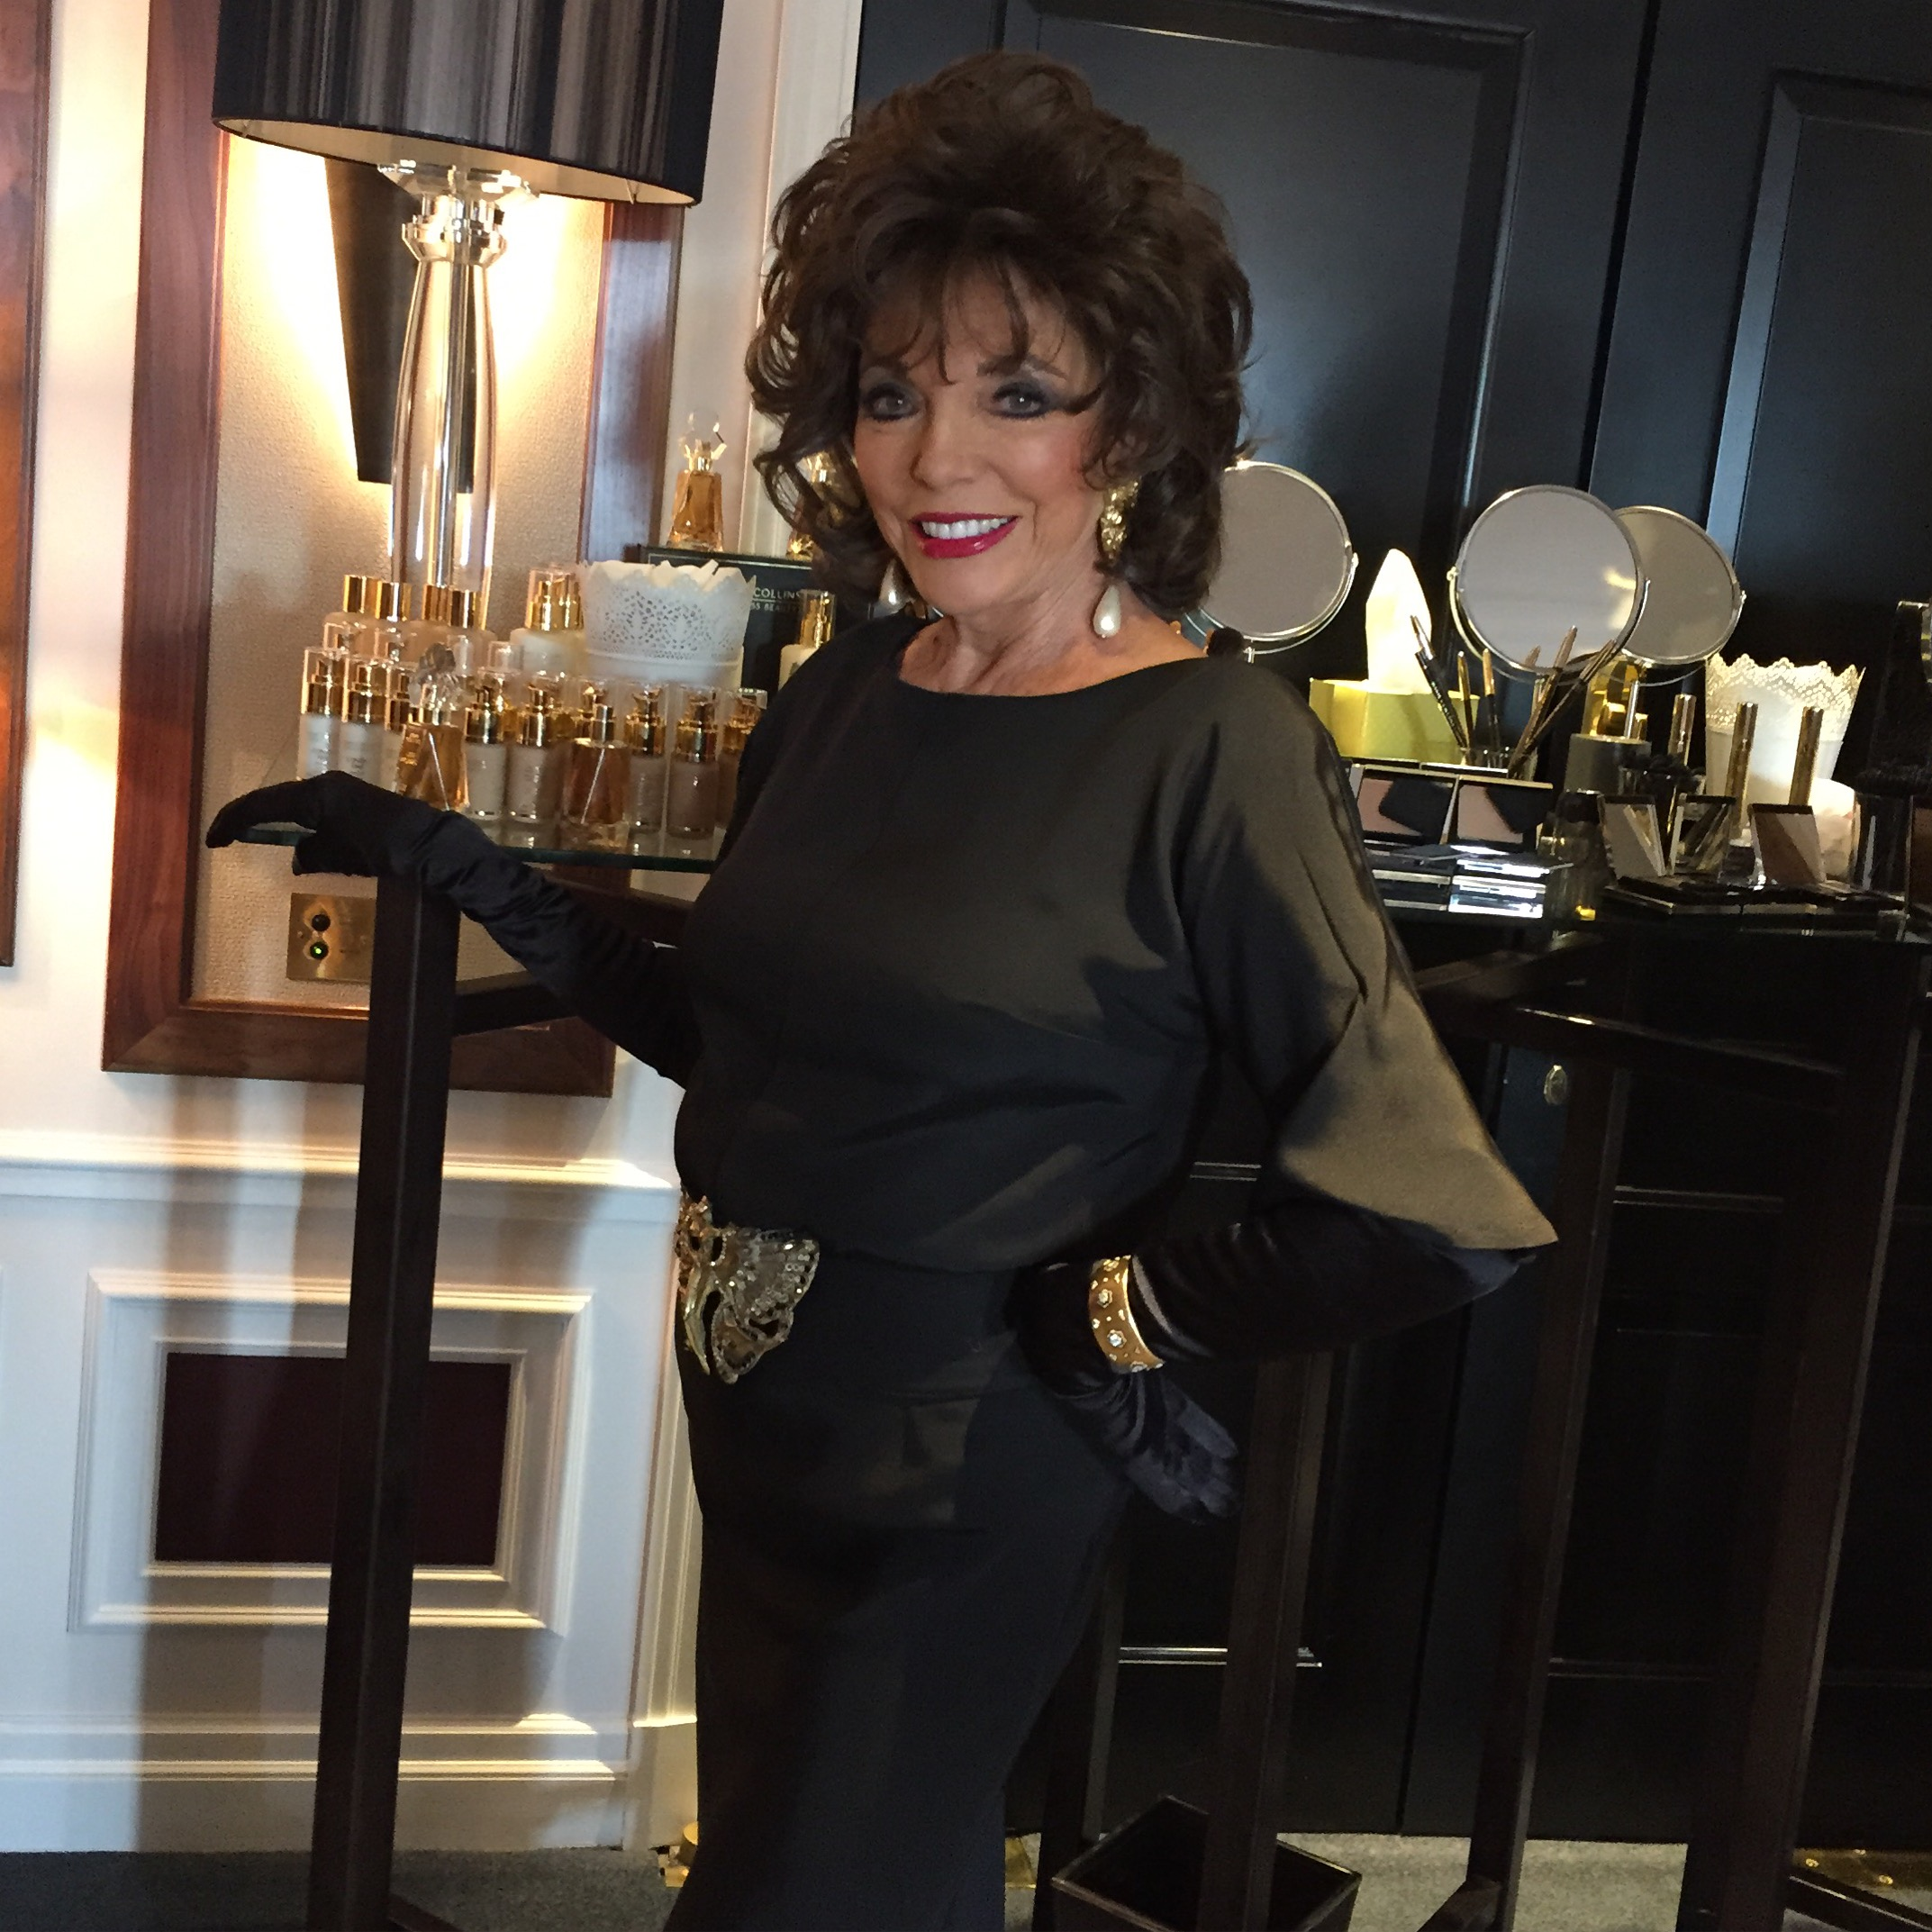 Secretstylefile Joan Joan Collins Timeless Beauty A/W launch at Claridges: Cocktails with Joan